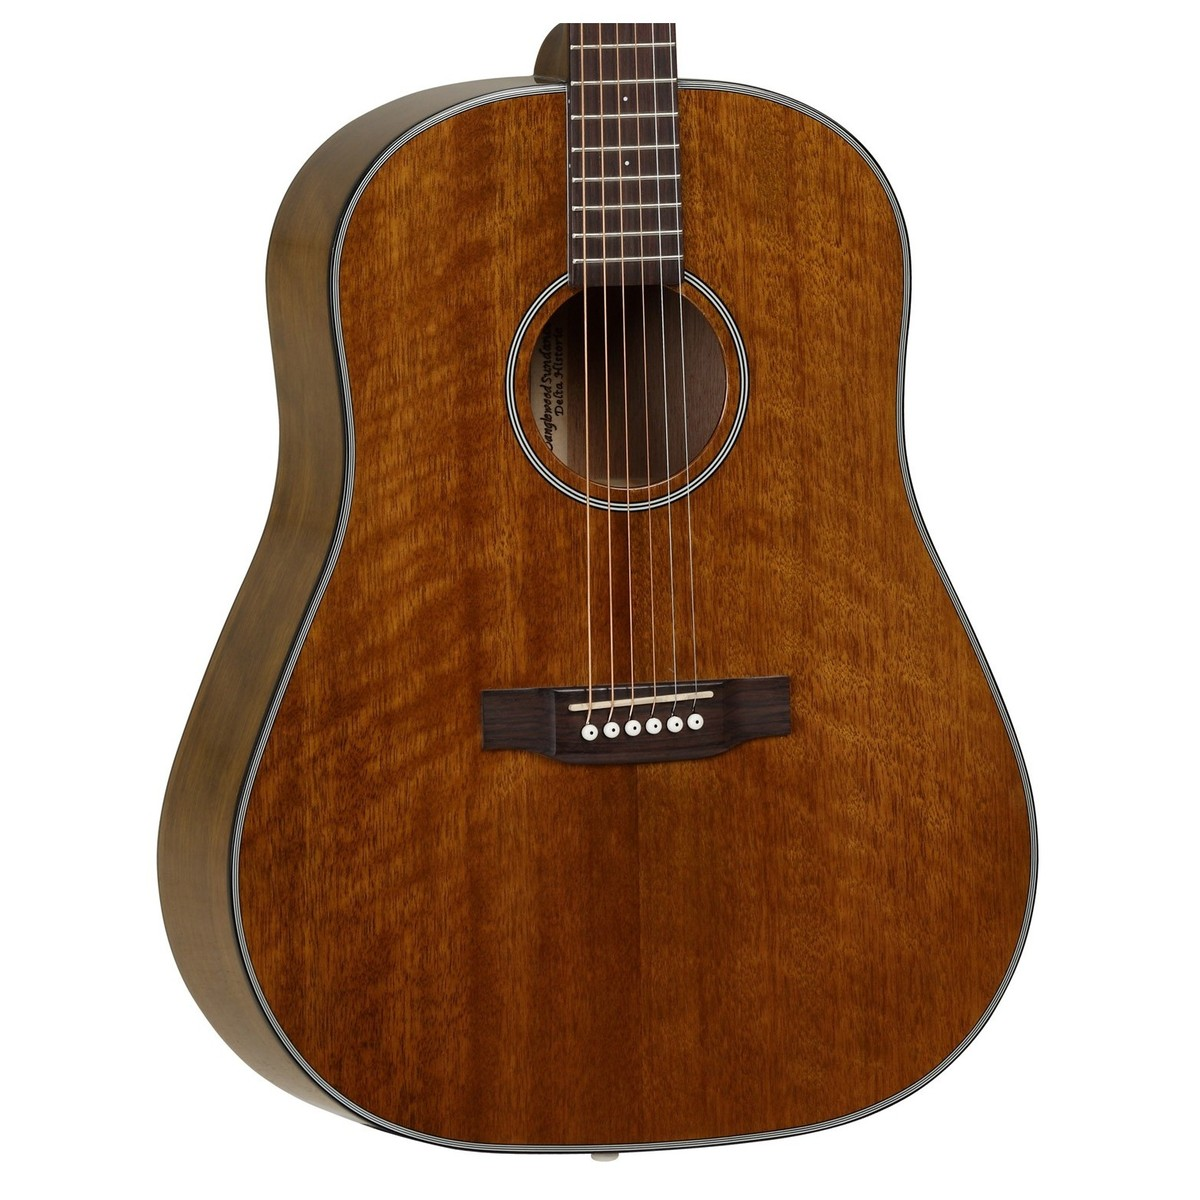 Tanglewood tw40 sdd sundance dreadnought acoustic natural for The tanglewood